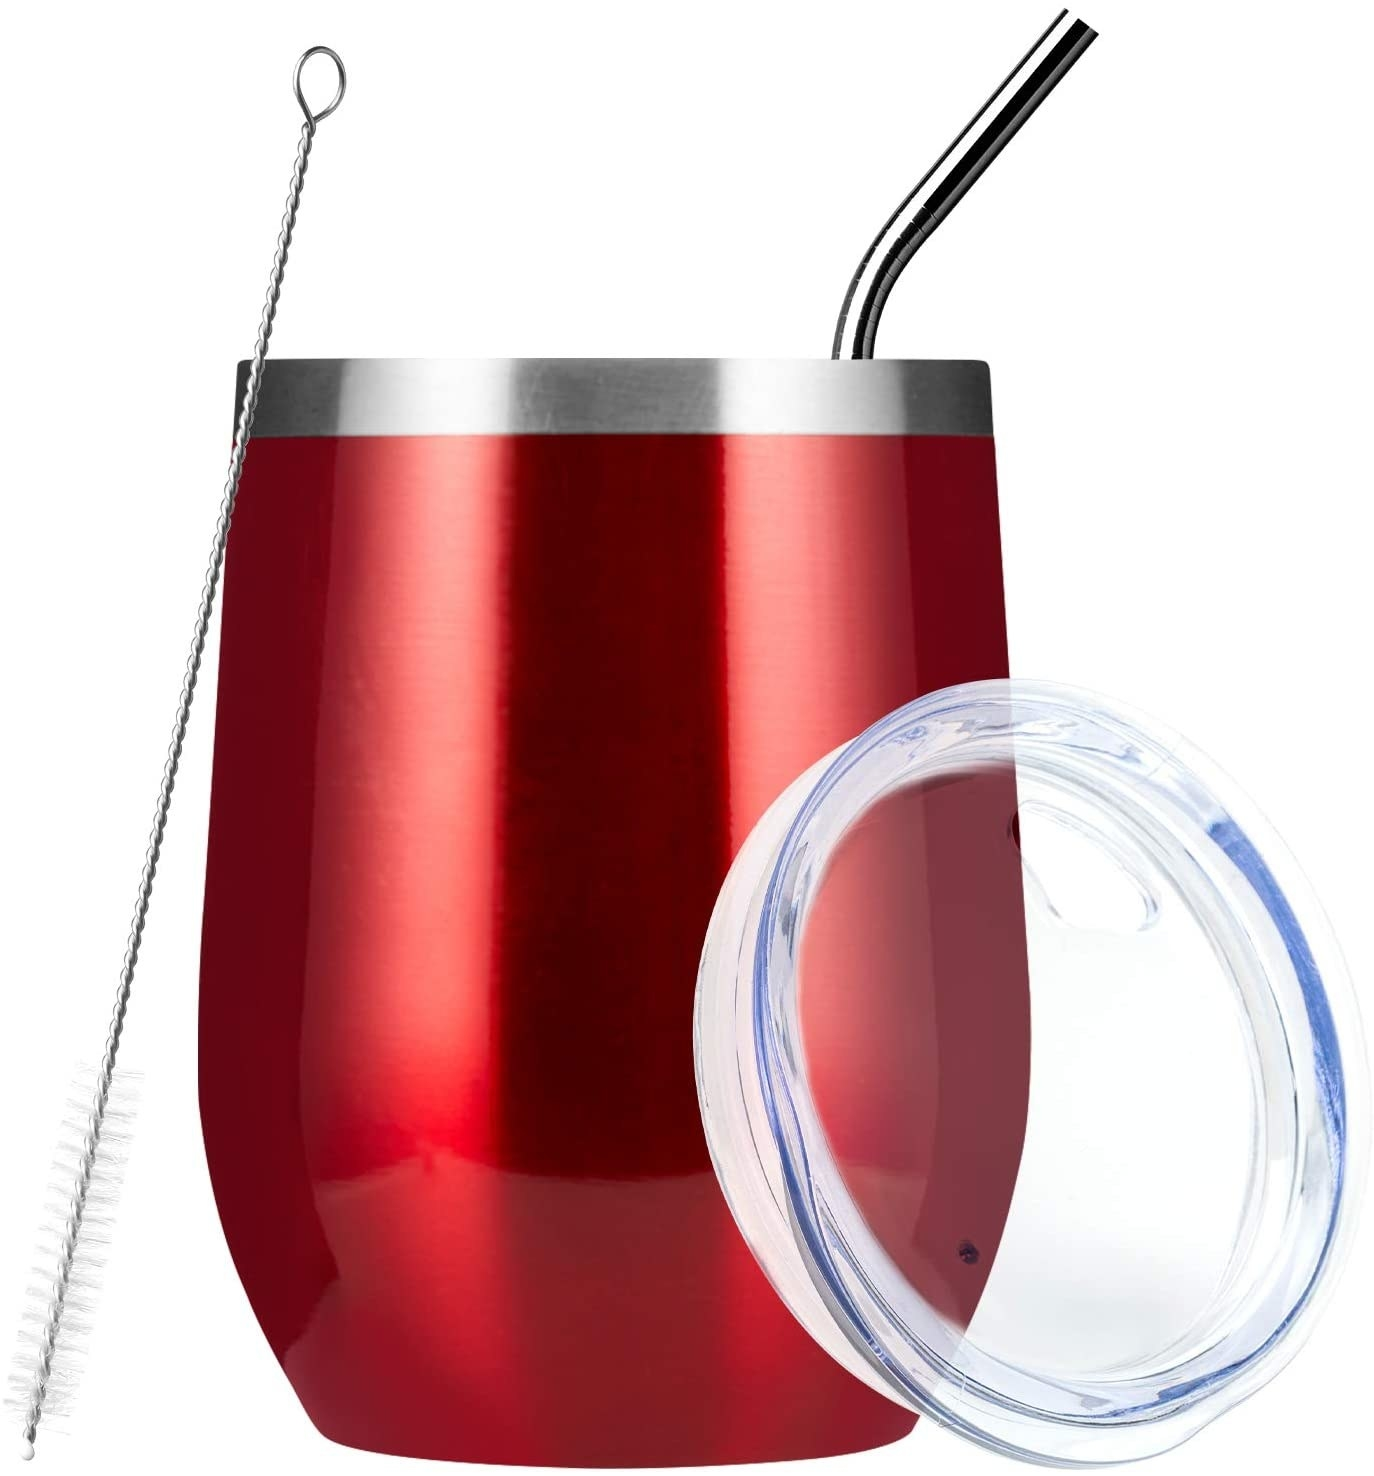 Red wine tumbler with included straw and cleaning brush